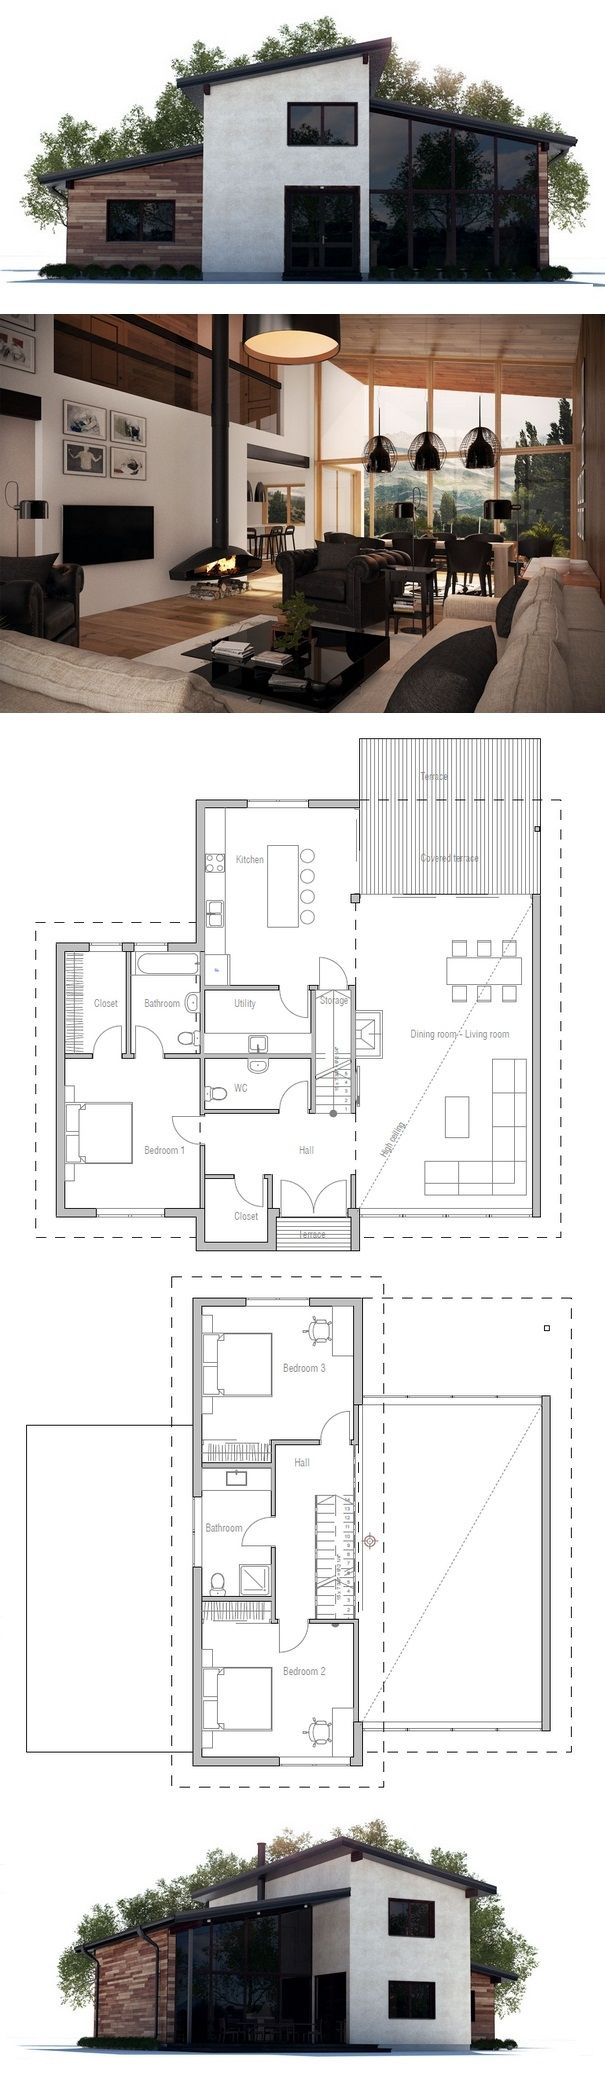 House Plan From ConceptHome.com · Wall Of WindowsLots ...